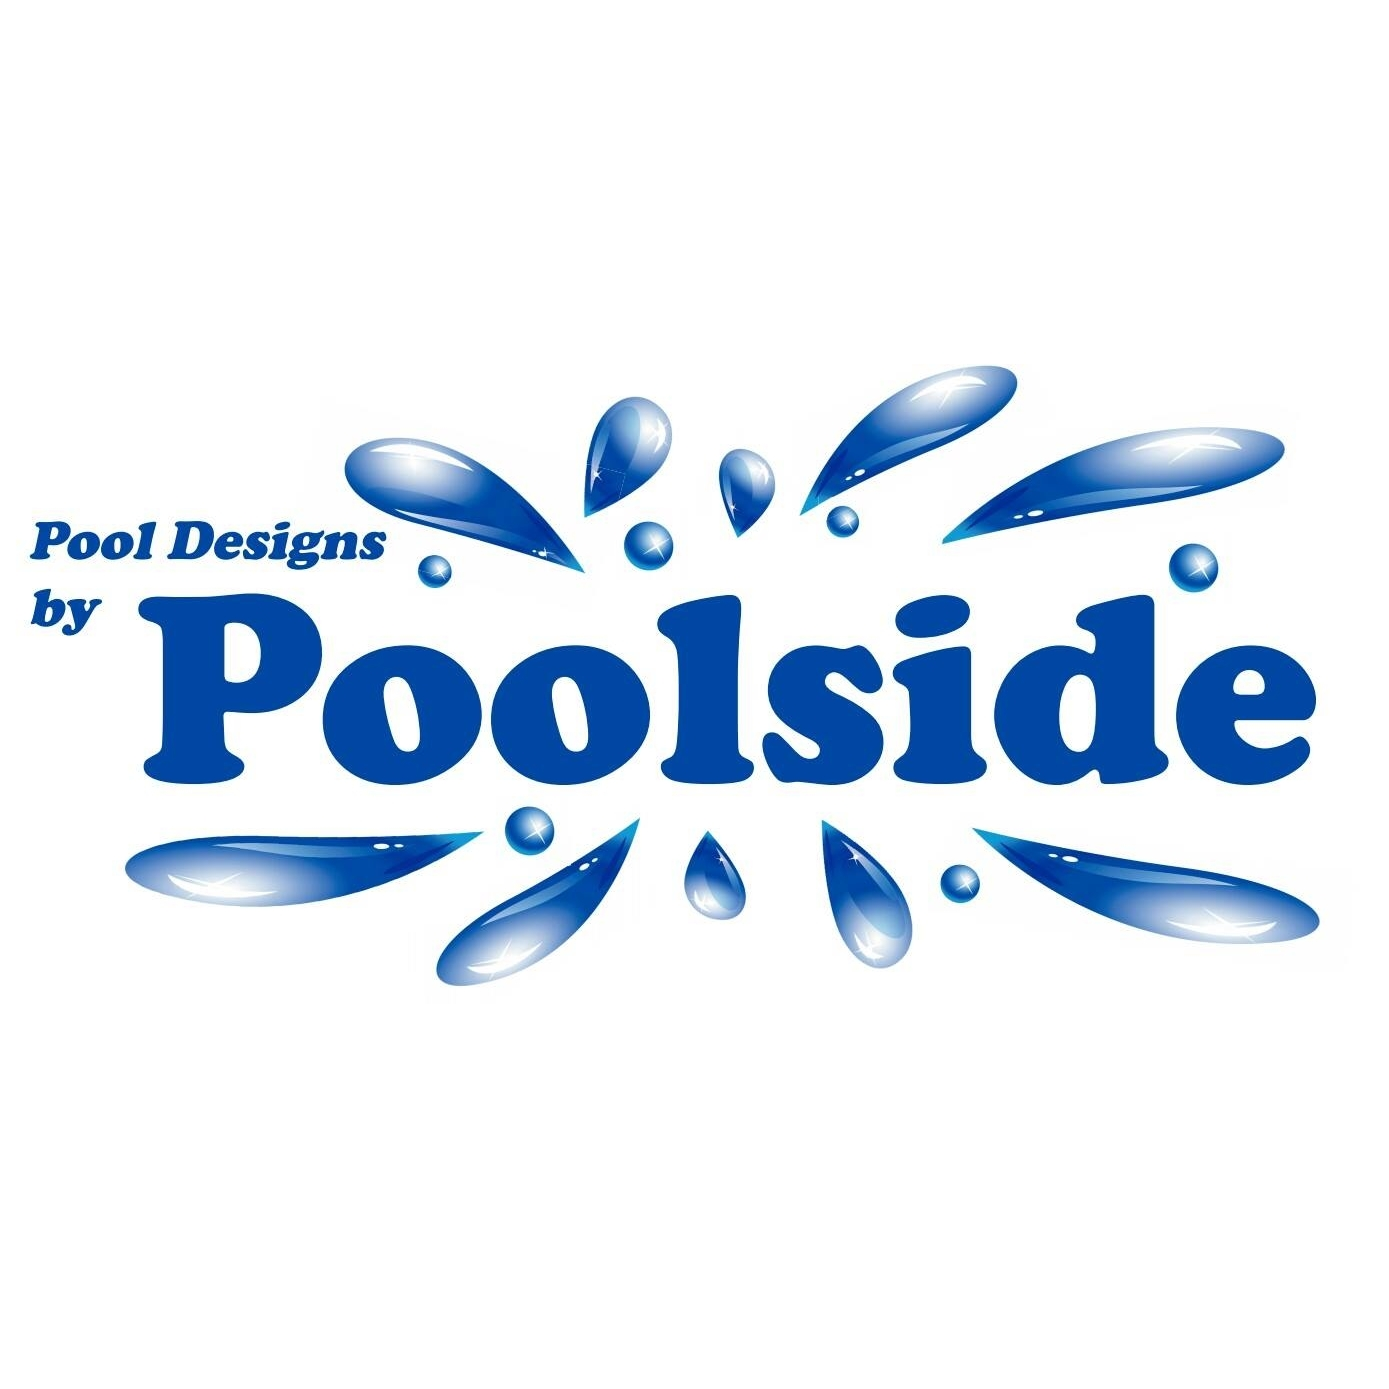 Pool designs by poolside 13 photos swimming pools for Pool design software reviews